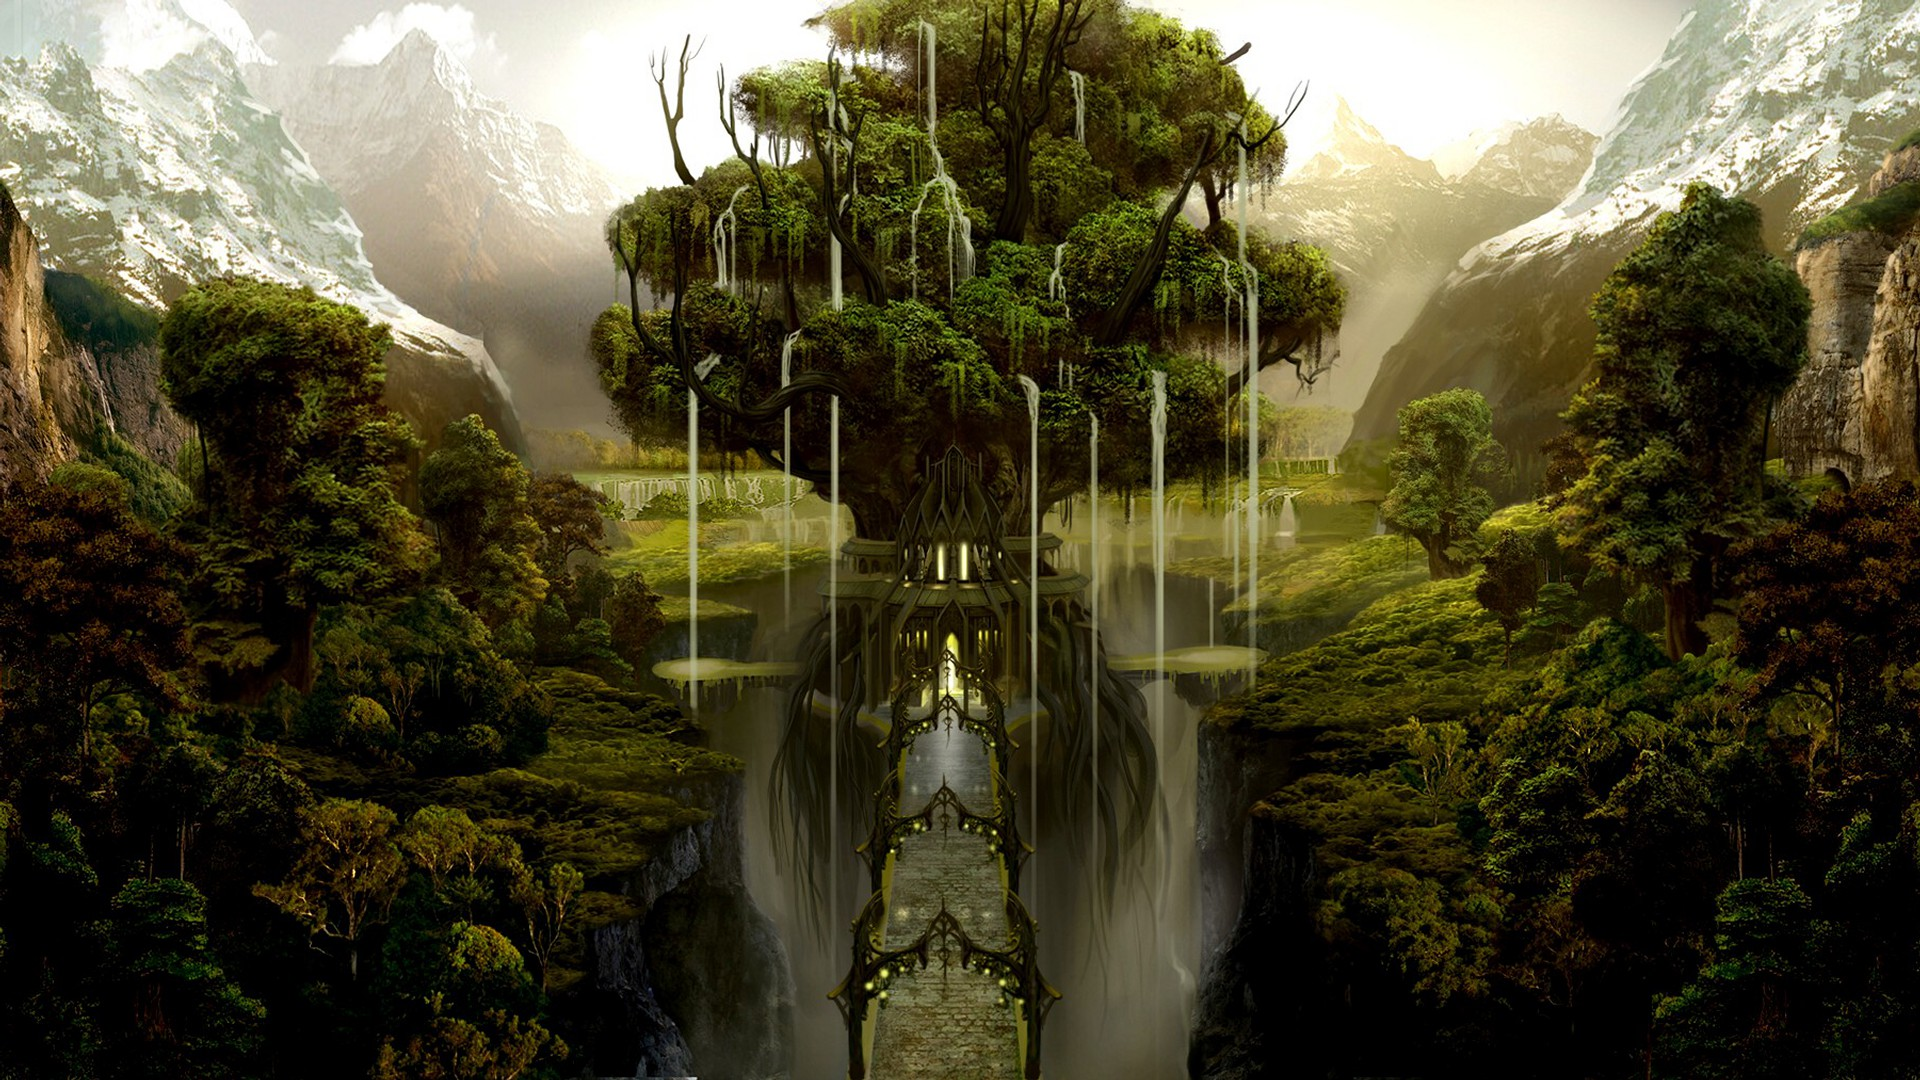 Yggdrasil is the ancient Norse tree of life